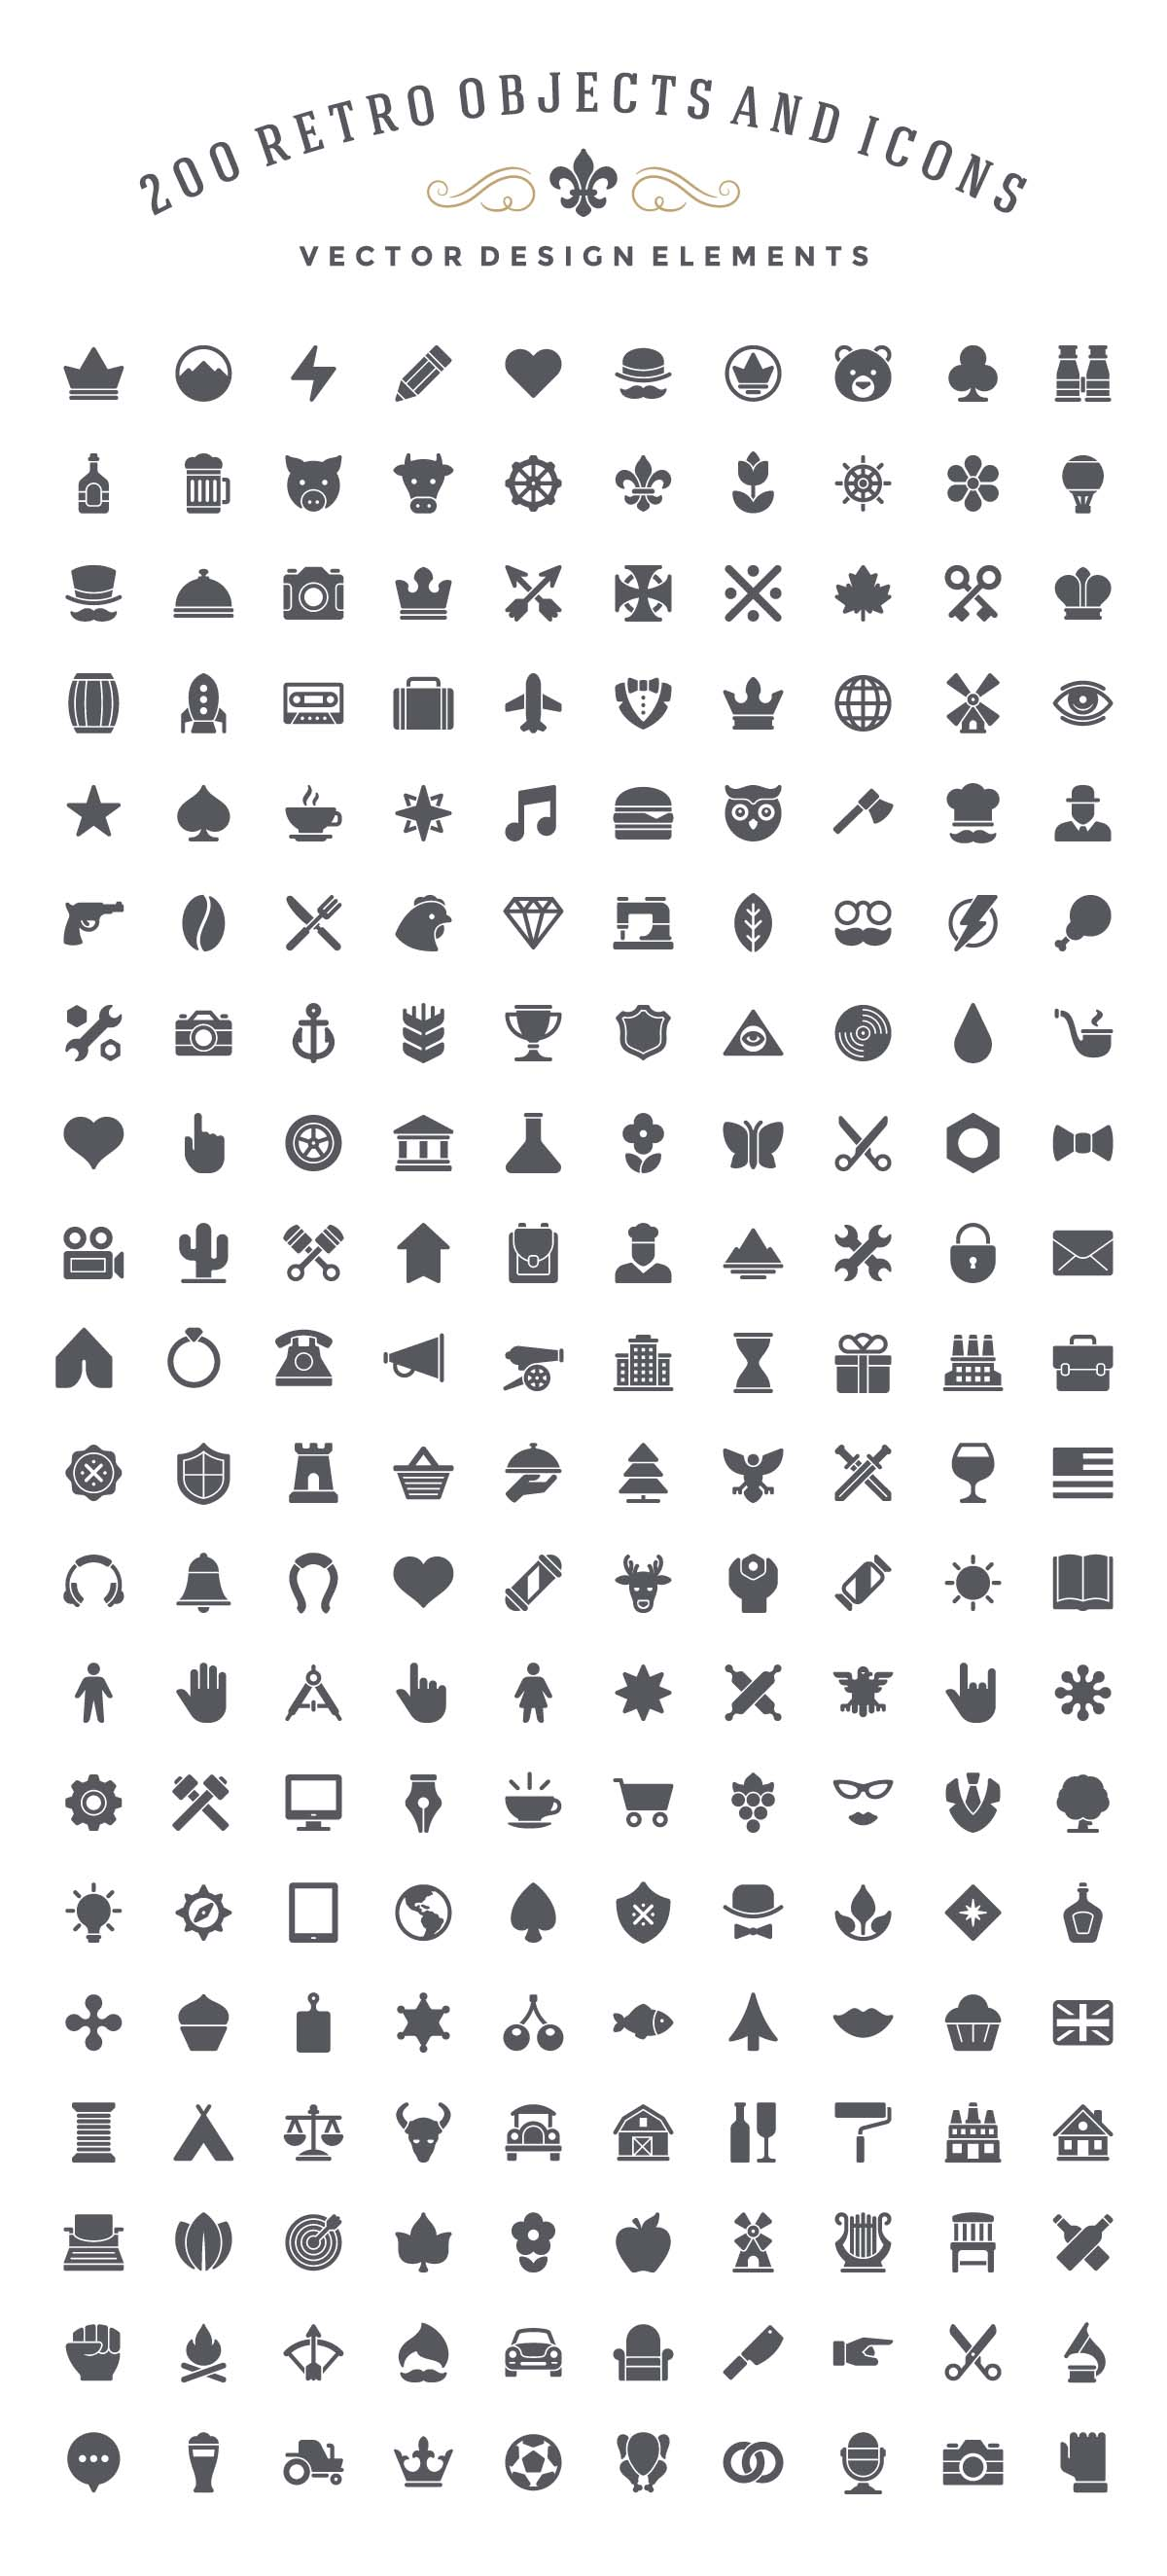 Retro objects and icons set vector